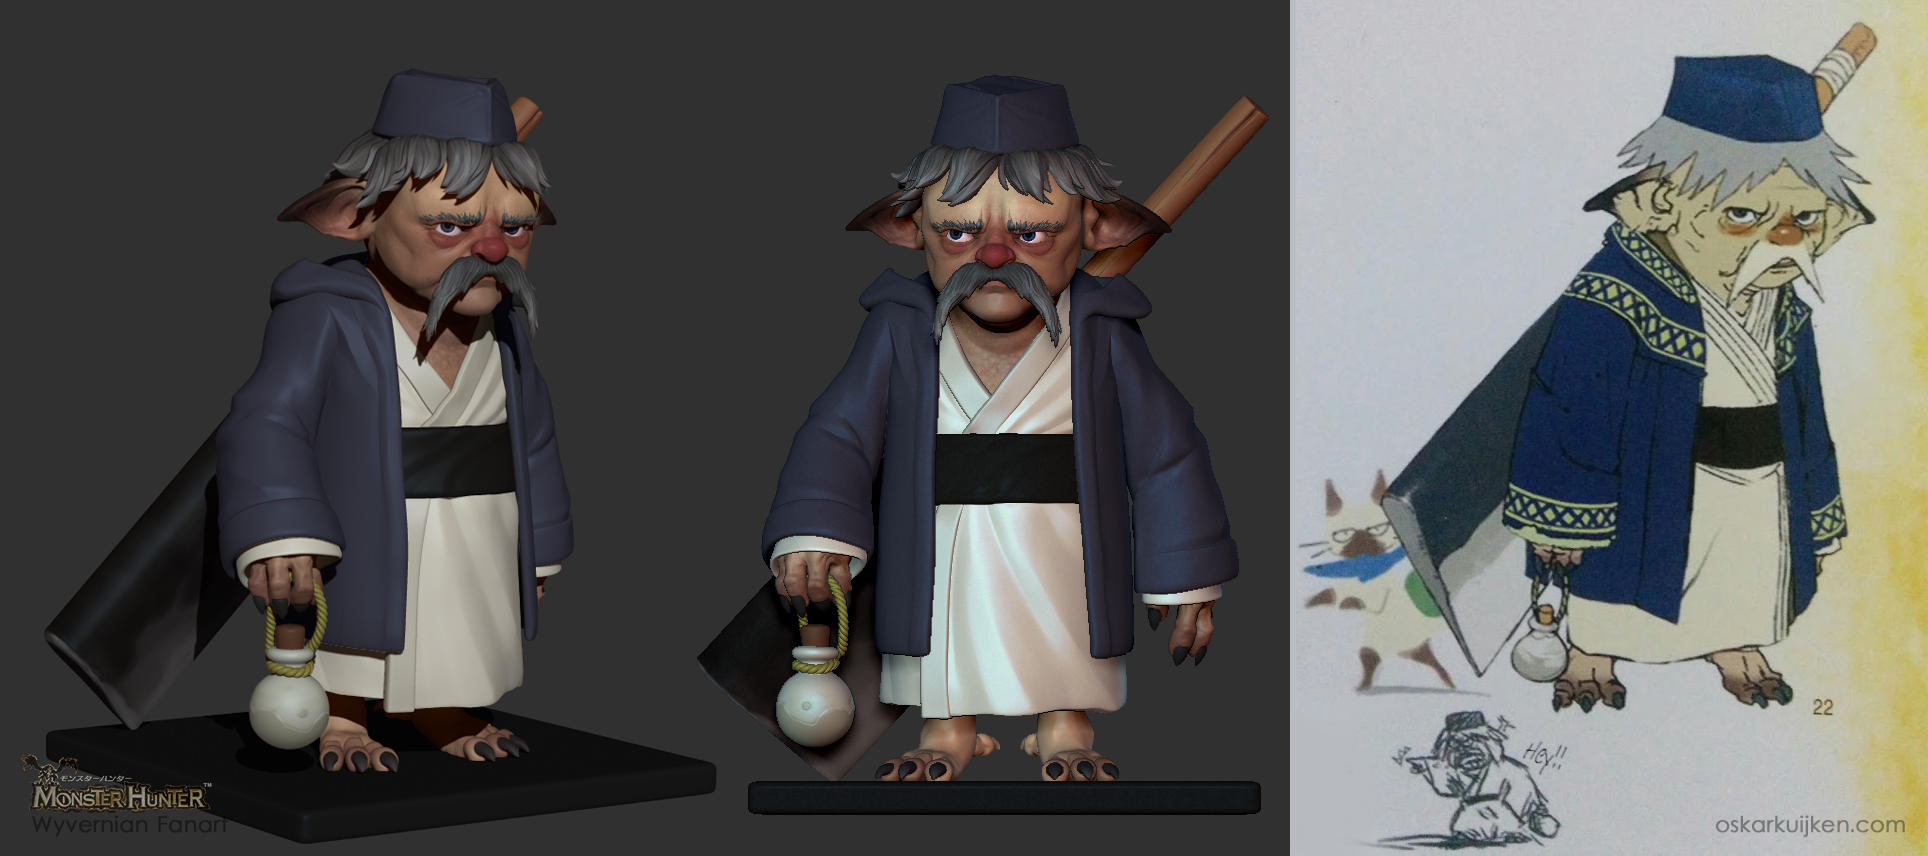 Sushi Chef Sculpt - Monster Hunter by OskarKuijken